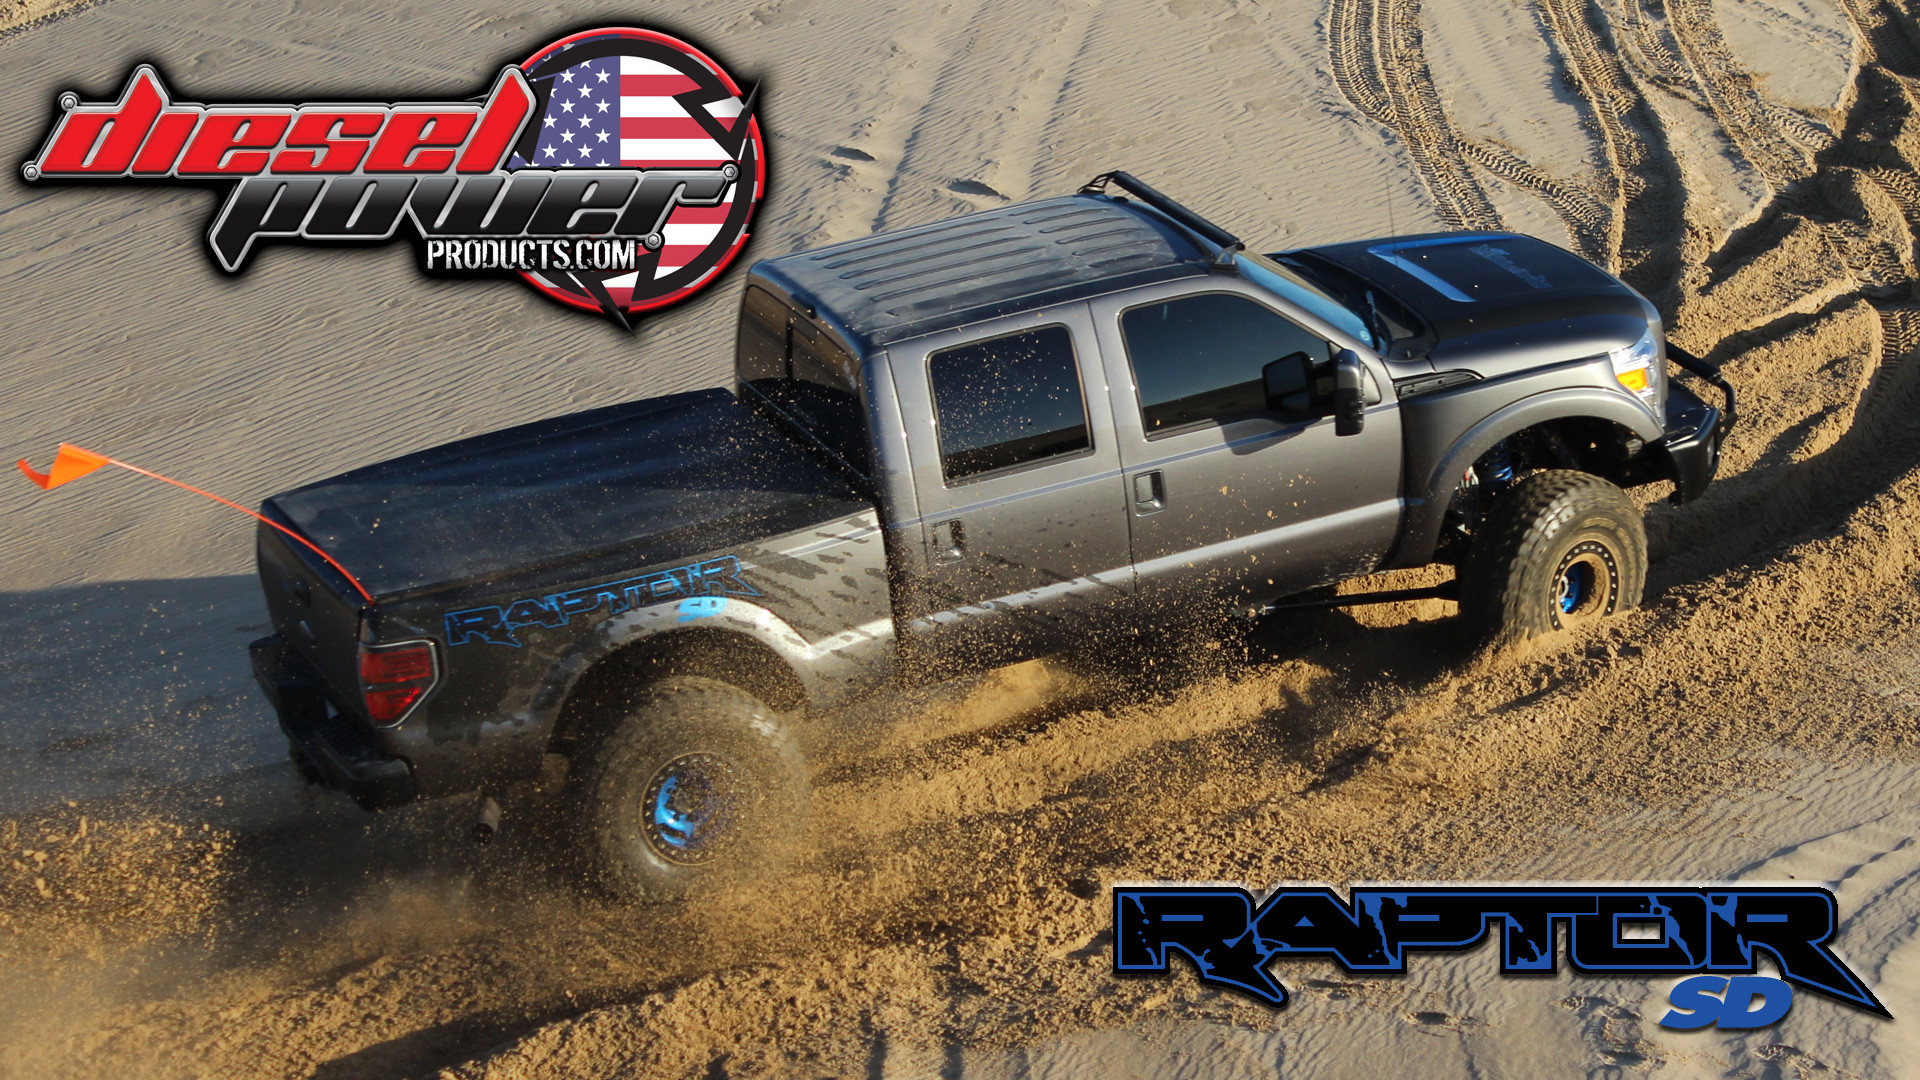 Powerstroke Logo Wallpaper Backgrounds featuring the